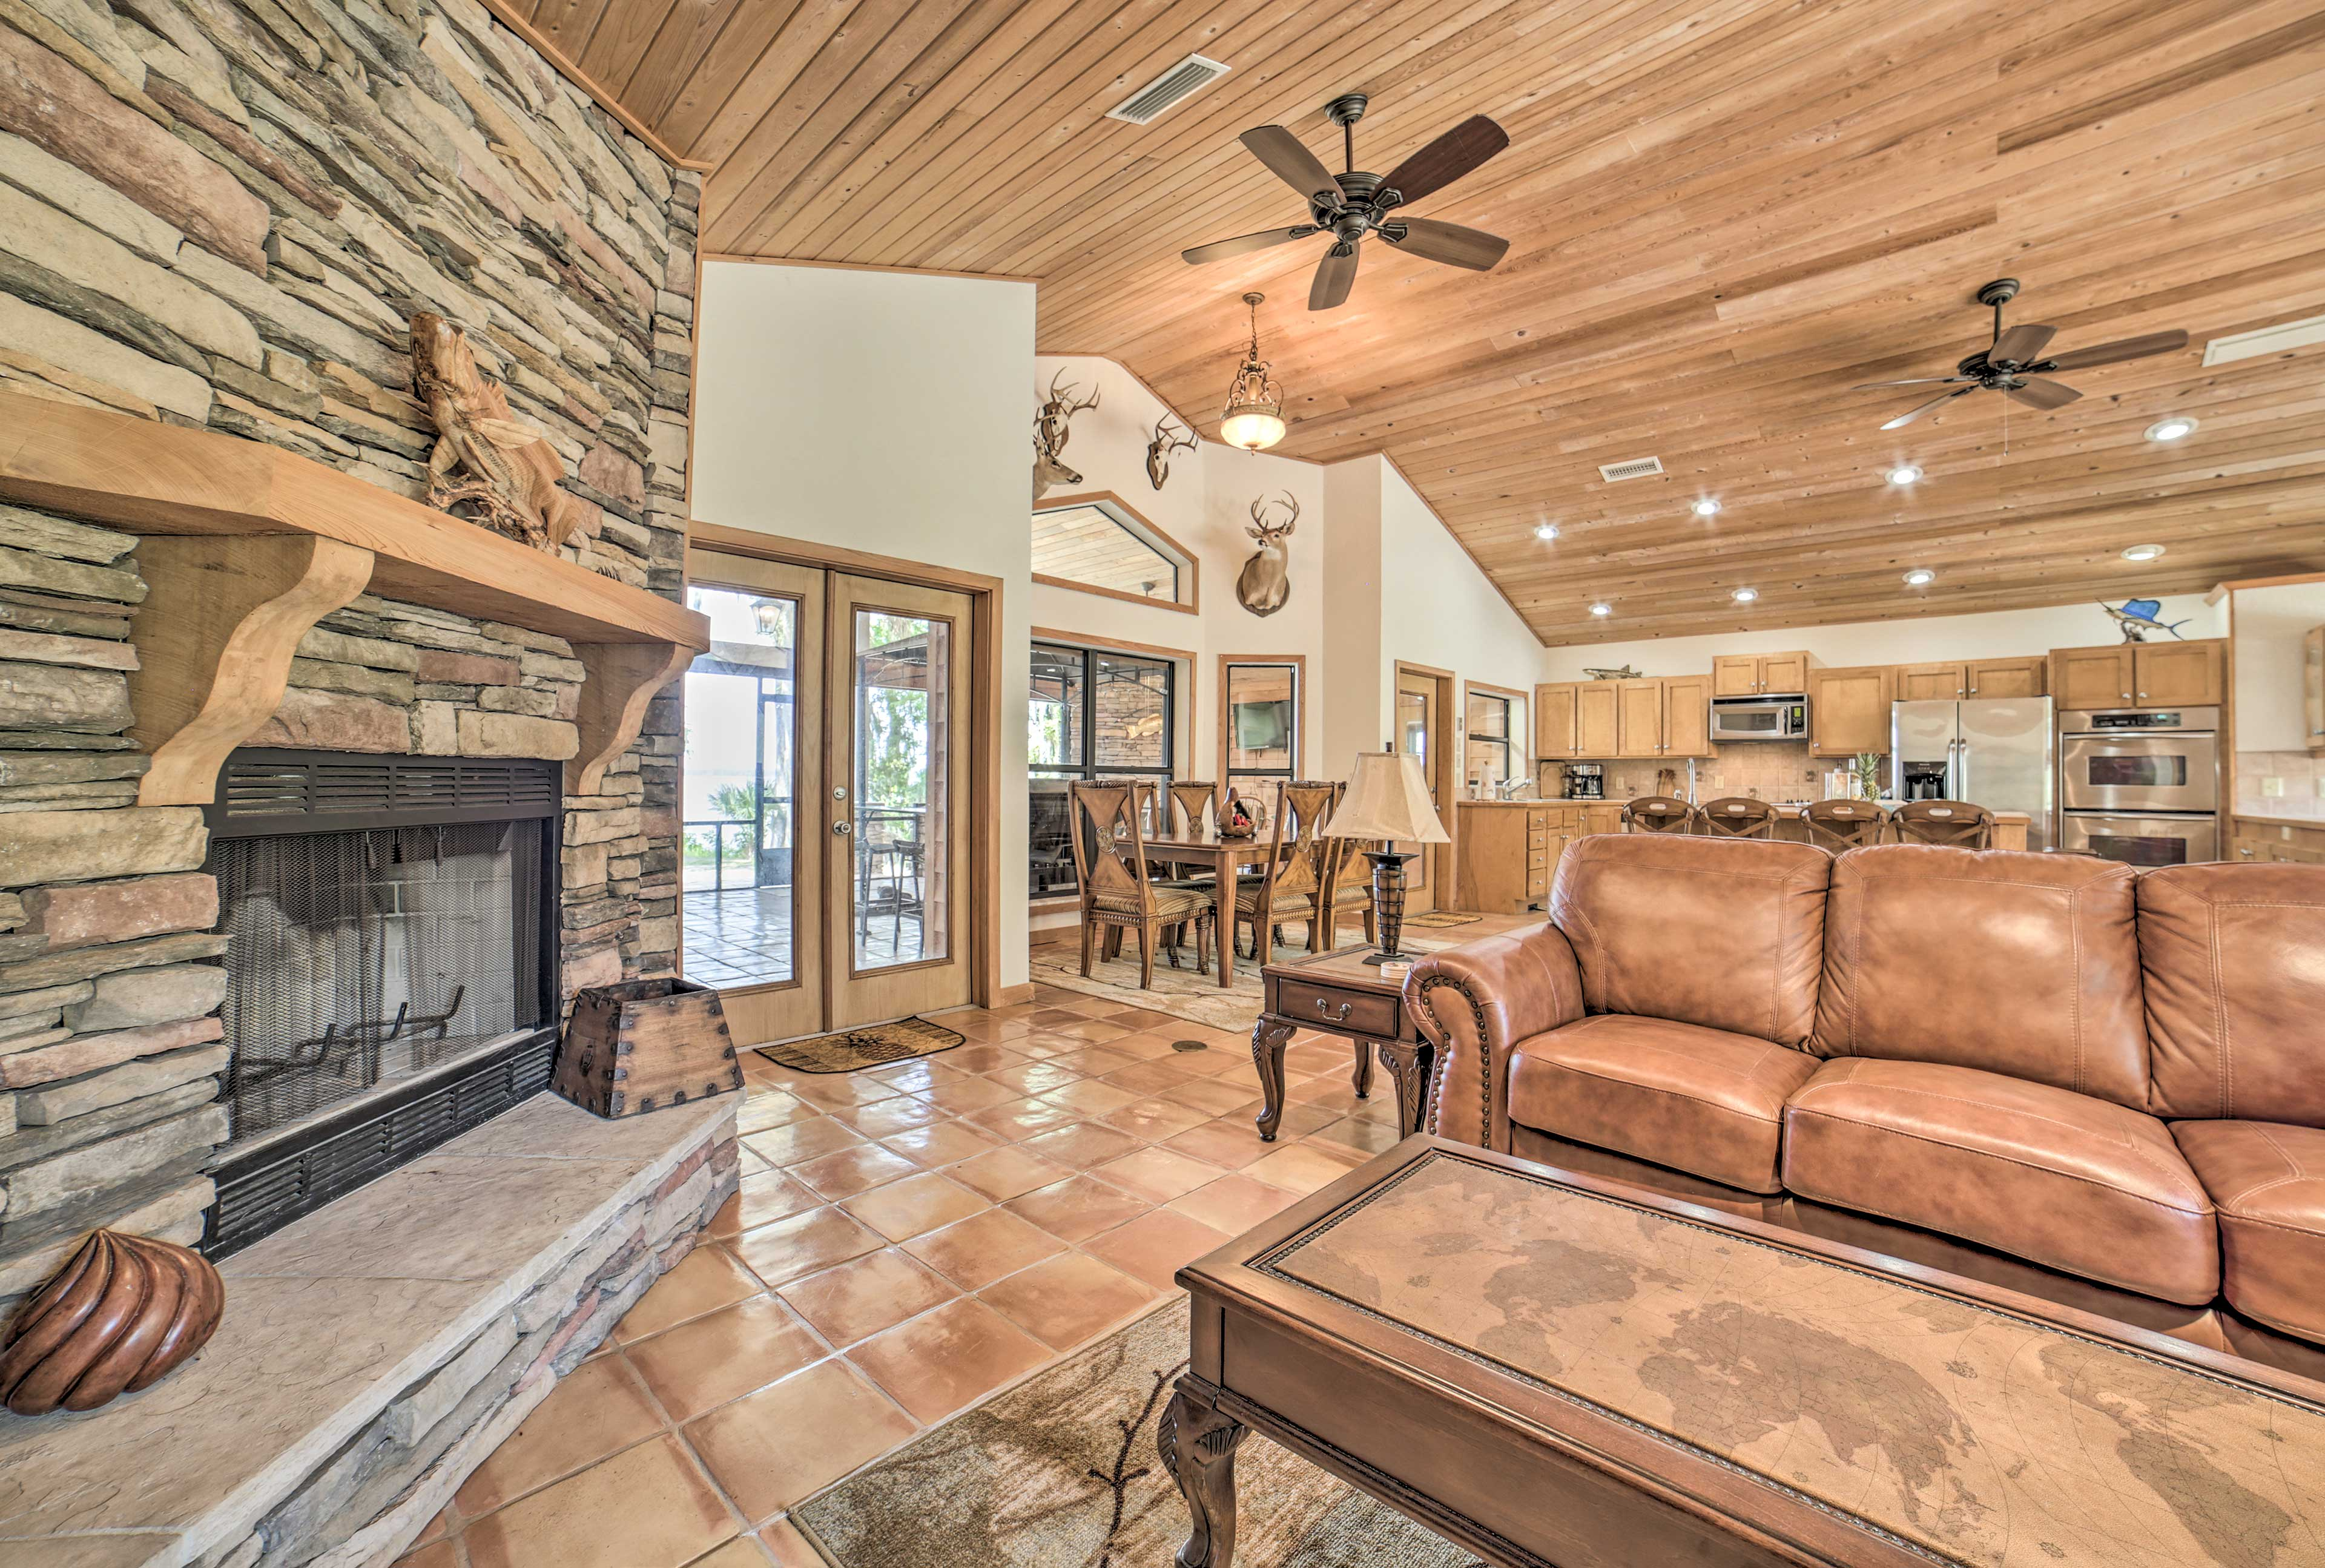 This living room also features a fireplace for chilly evenings.